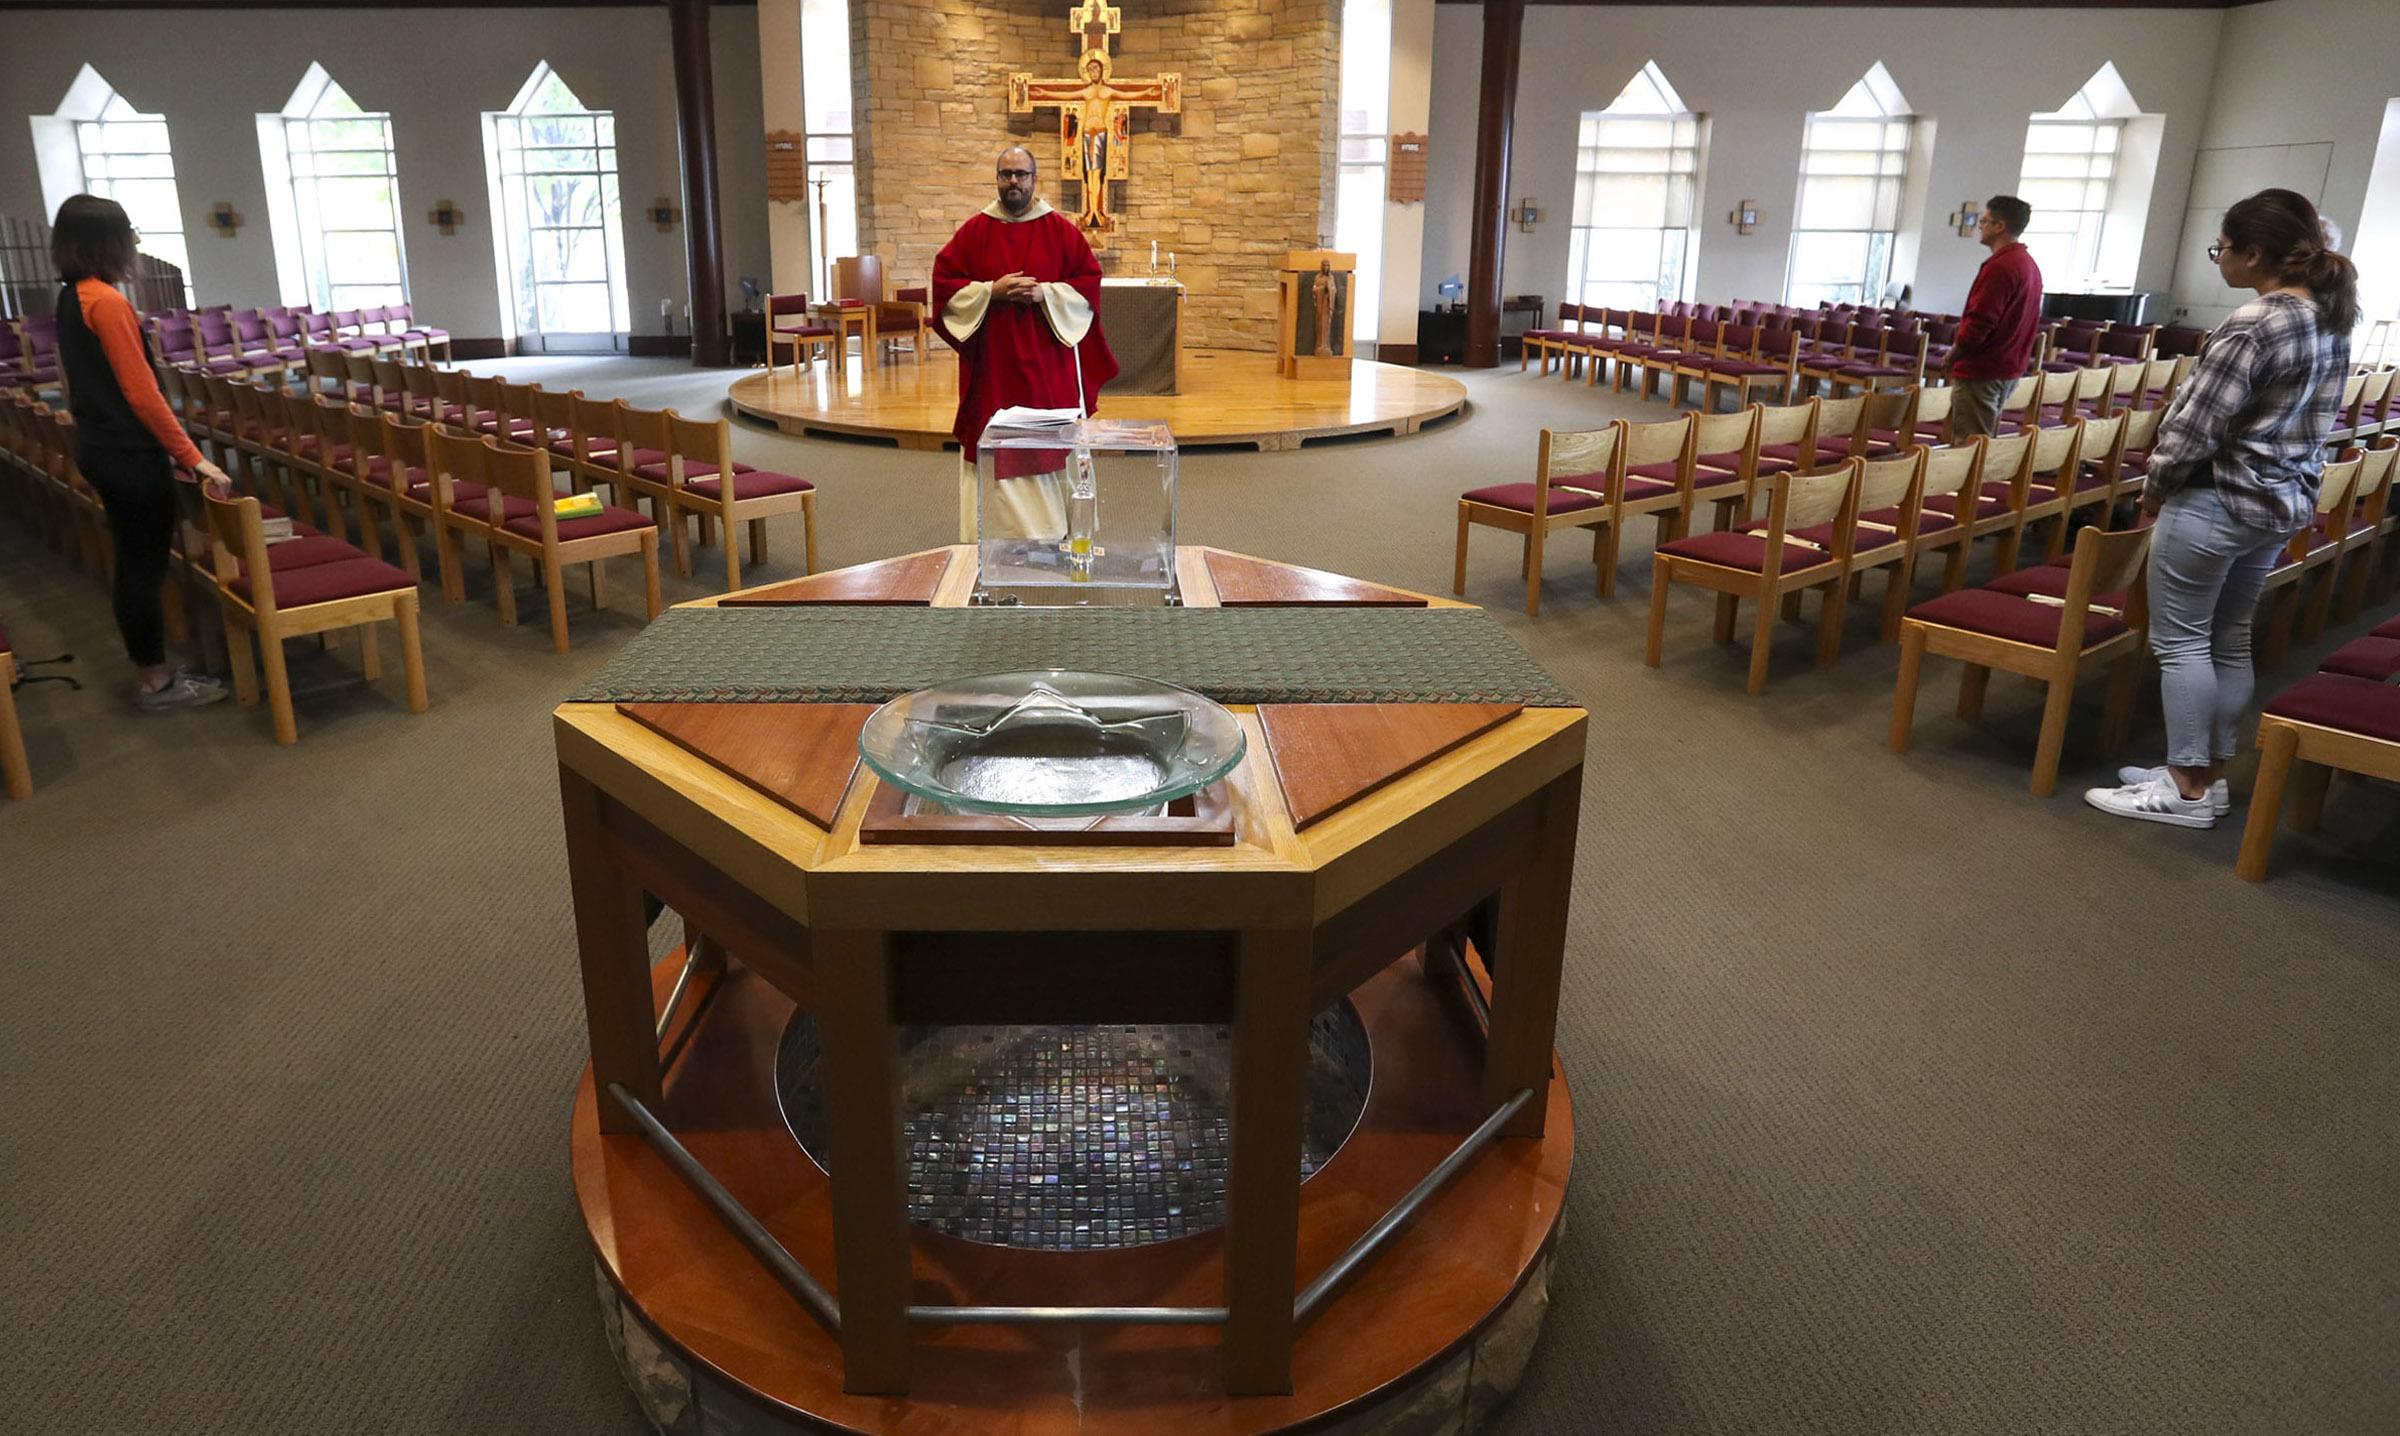 Father Cody Jorgensen celebrates Mass at the St. Catherine of Siena University Parish and Newman Center in Salt Lake City on Friday, Oct. 18, 2019.